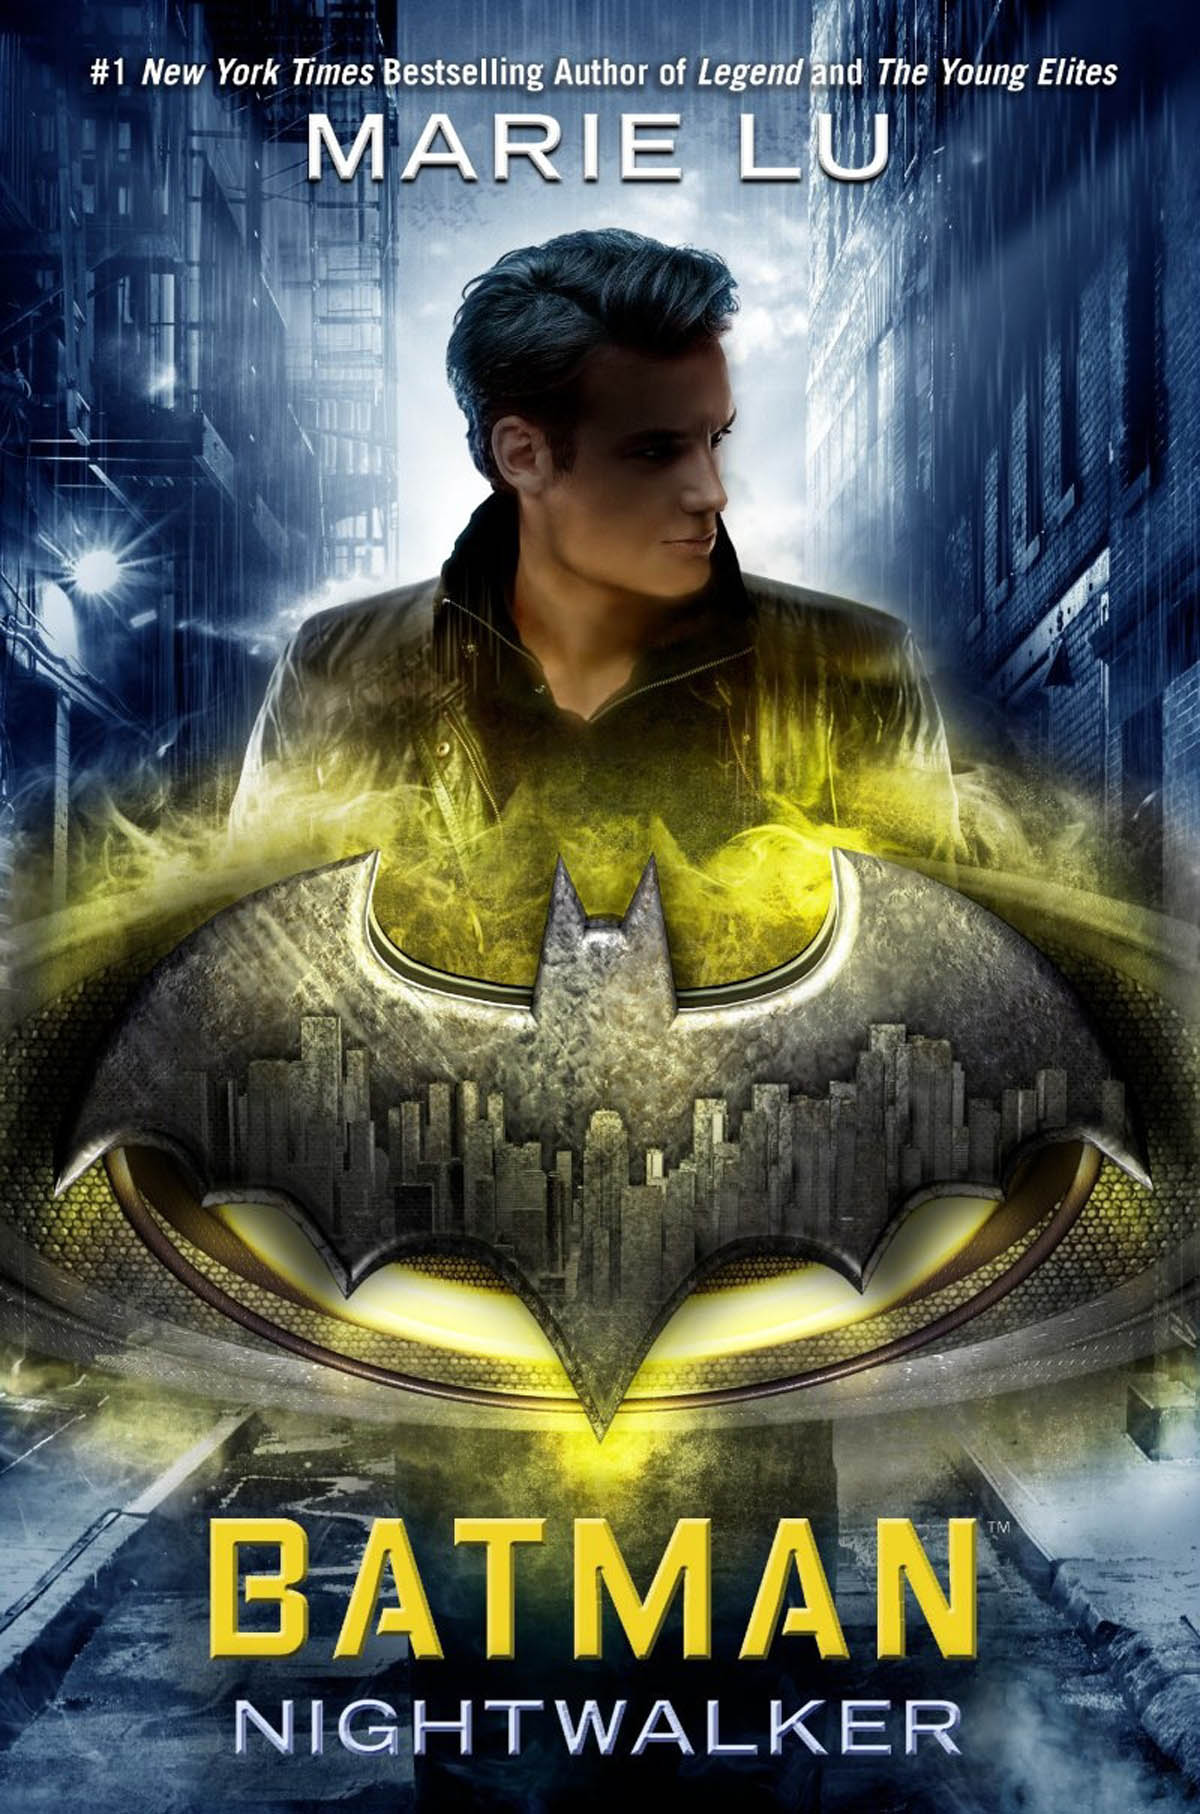 movie poster design scifi cgi batman